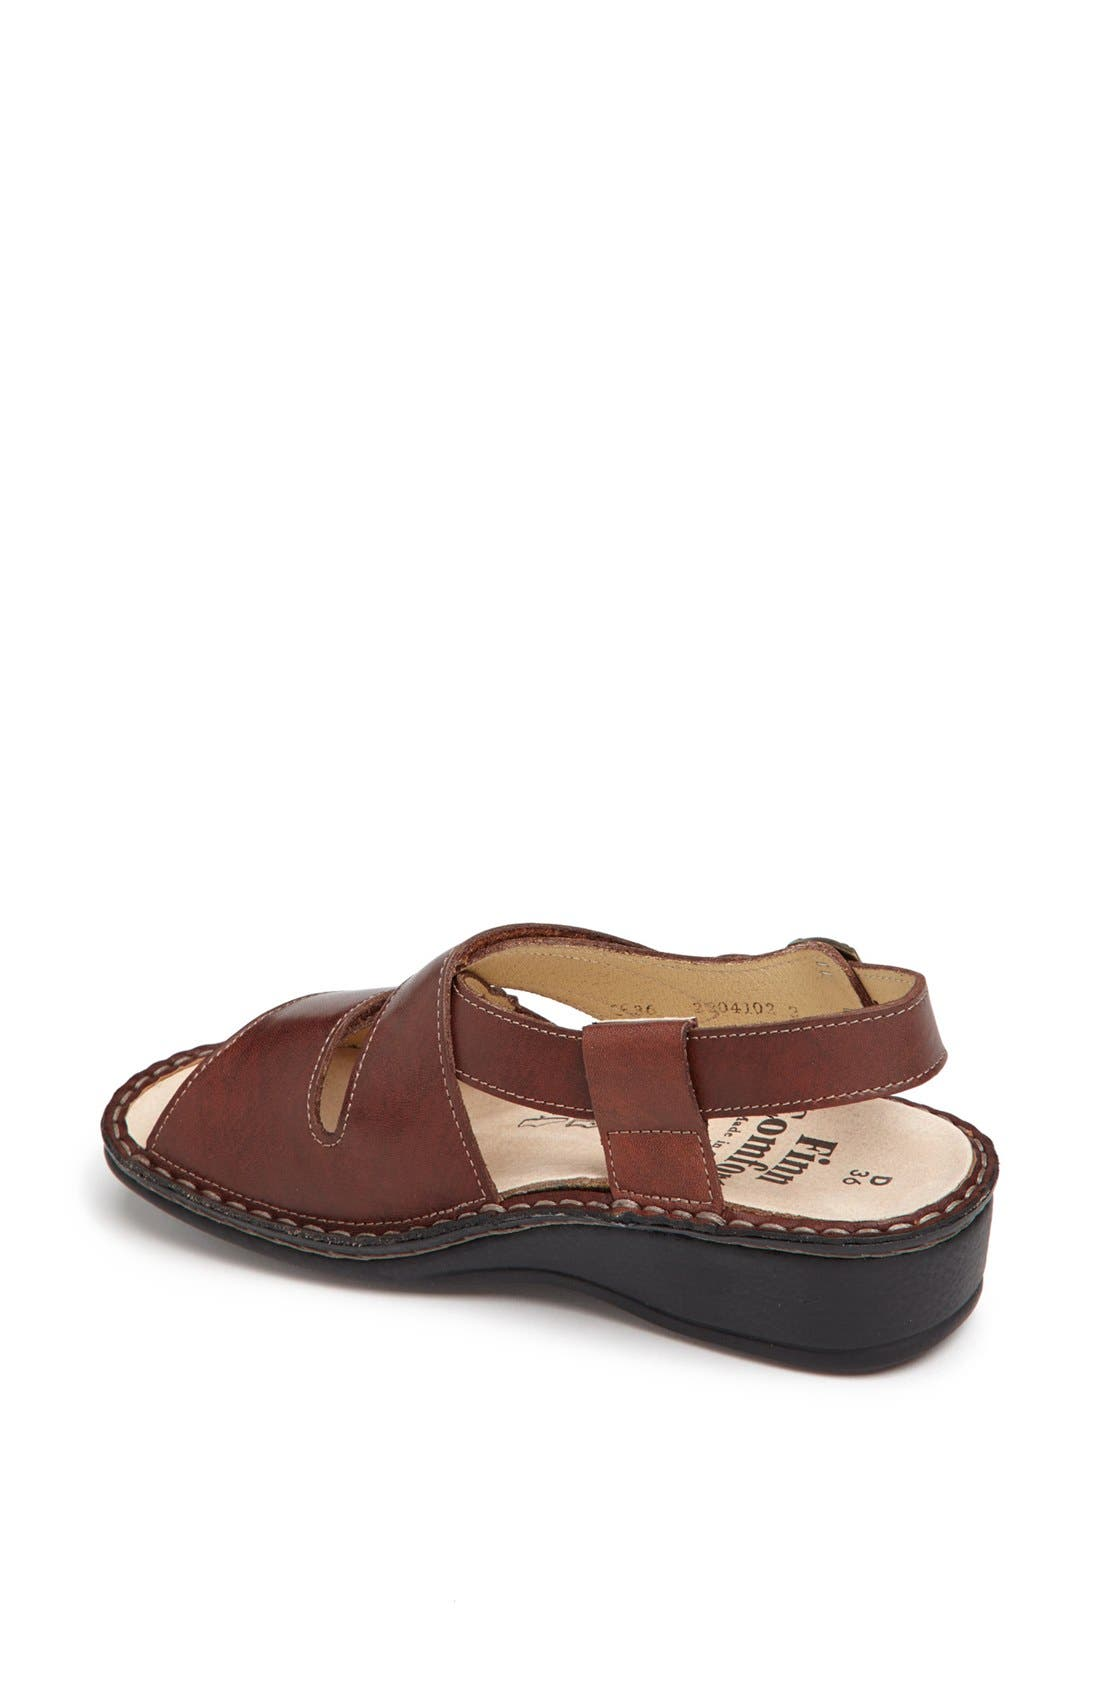 'Jersey' Sandal,                             Alternate thumbnail 4, color,                             BRANDY COUNTRY